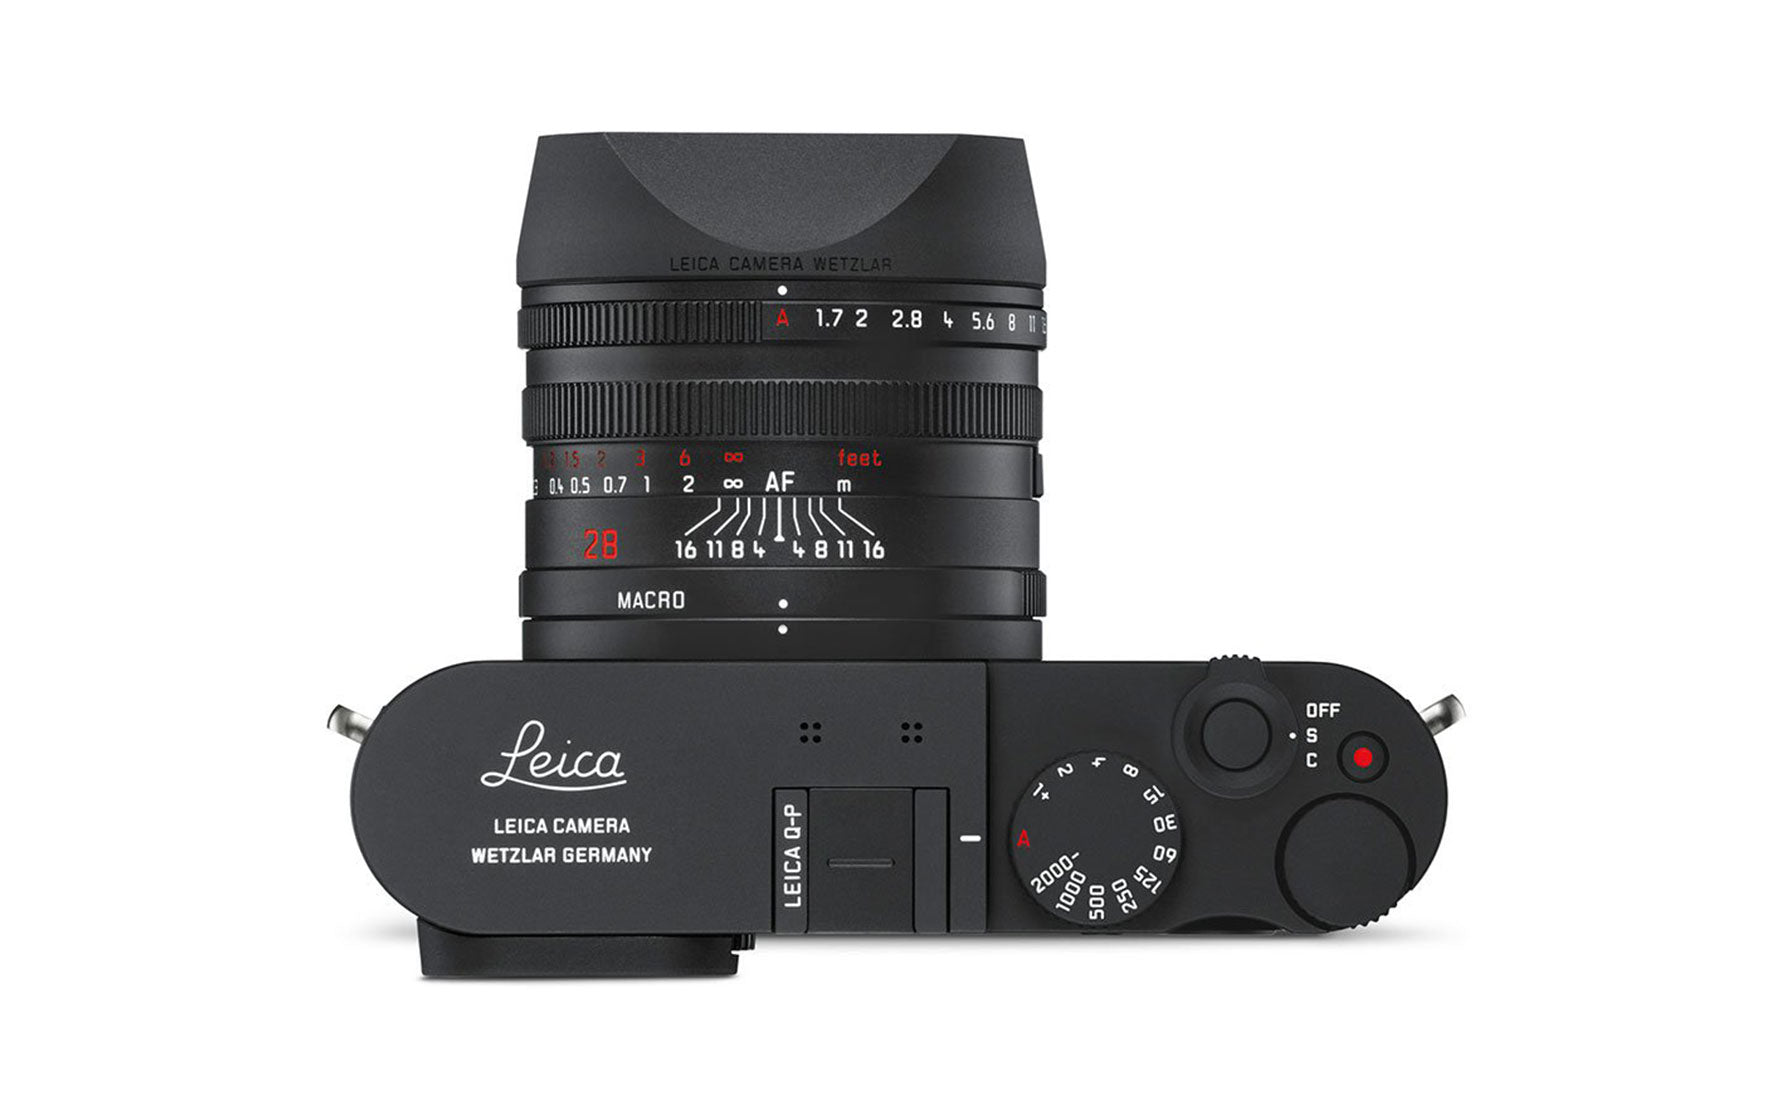 leica v lux 114 manual